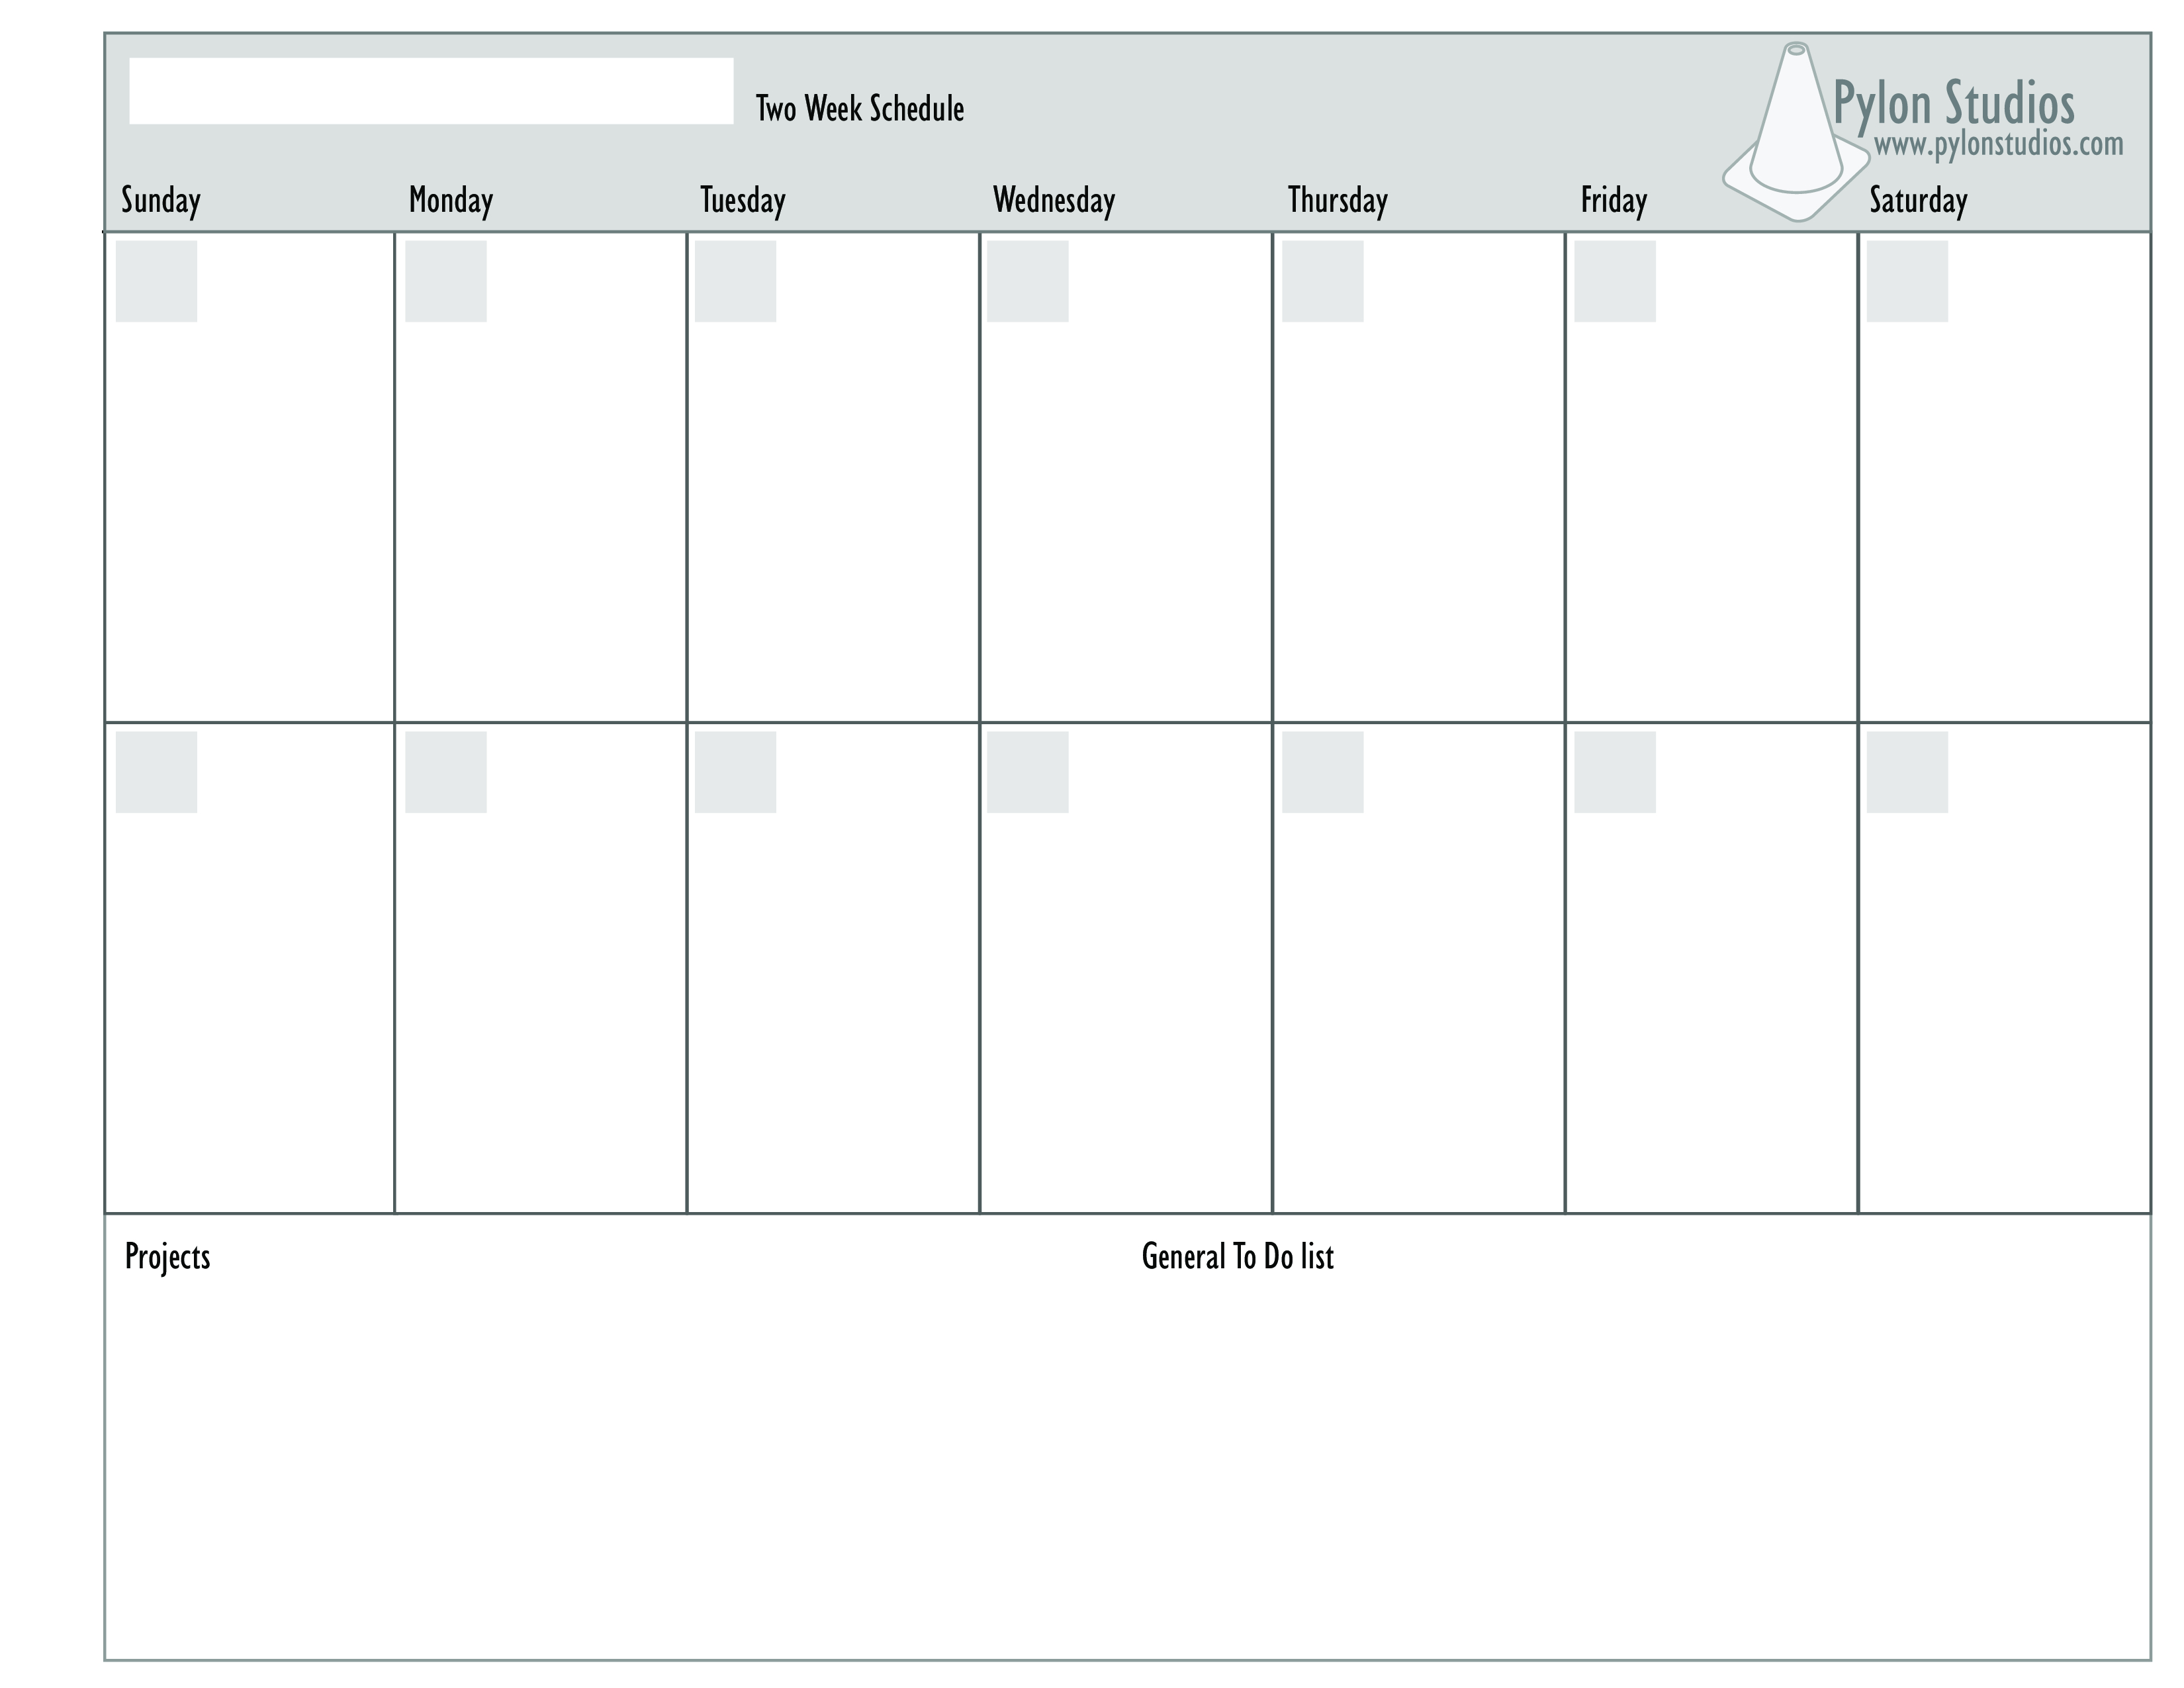 2 Week Calendar  How To Create A 2 Week Calendar? Download throughout Two Week Calander